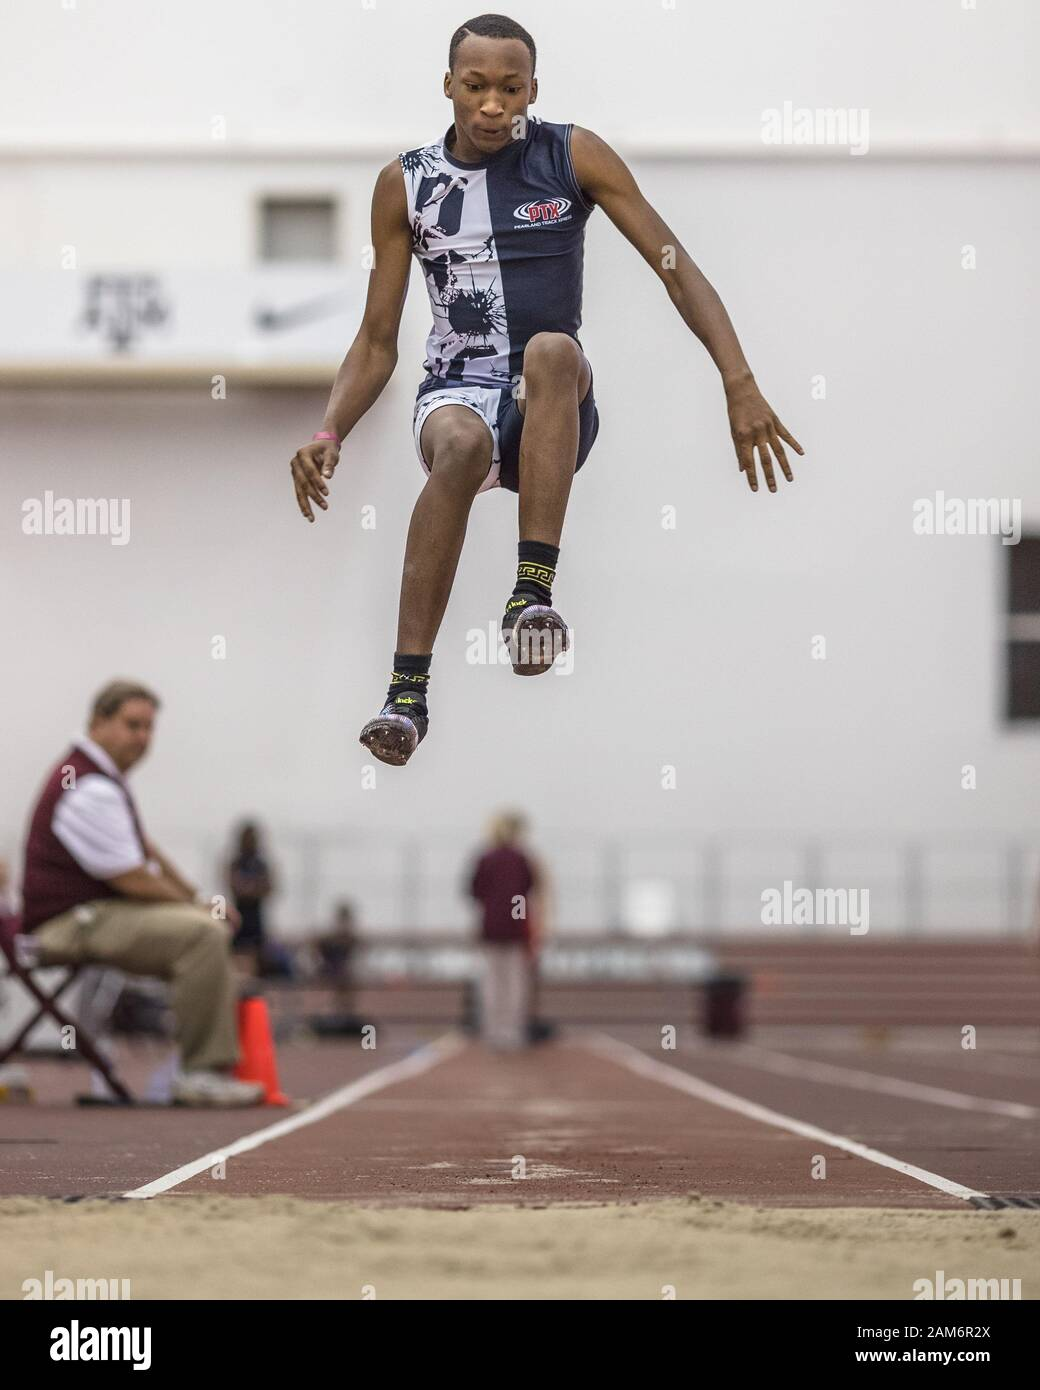 College Station, Texas, USA. 11th Jan, 2020. Nolen Richie competes in the Boys triple jump during the Texas A&M High School Indoor Classic at the McFerrin Athletic Center's Gilliam Indoor Stadium in College Station, Texas. Prentice C. James/CSM/Alamy Live News Stock Photo